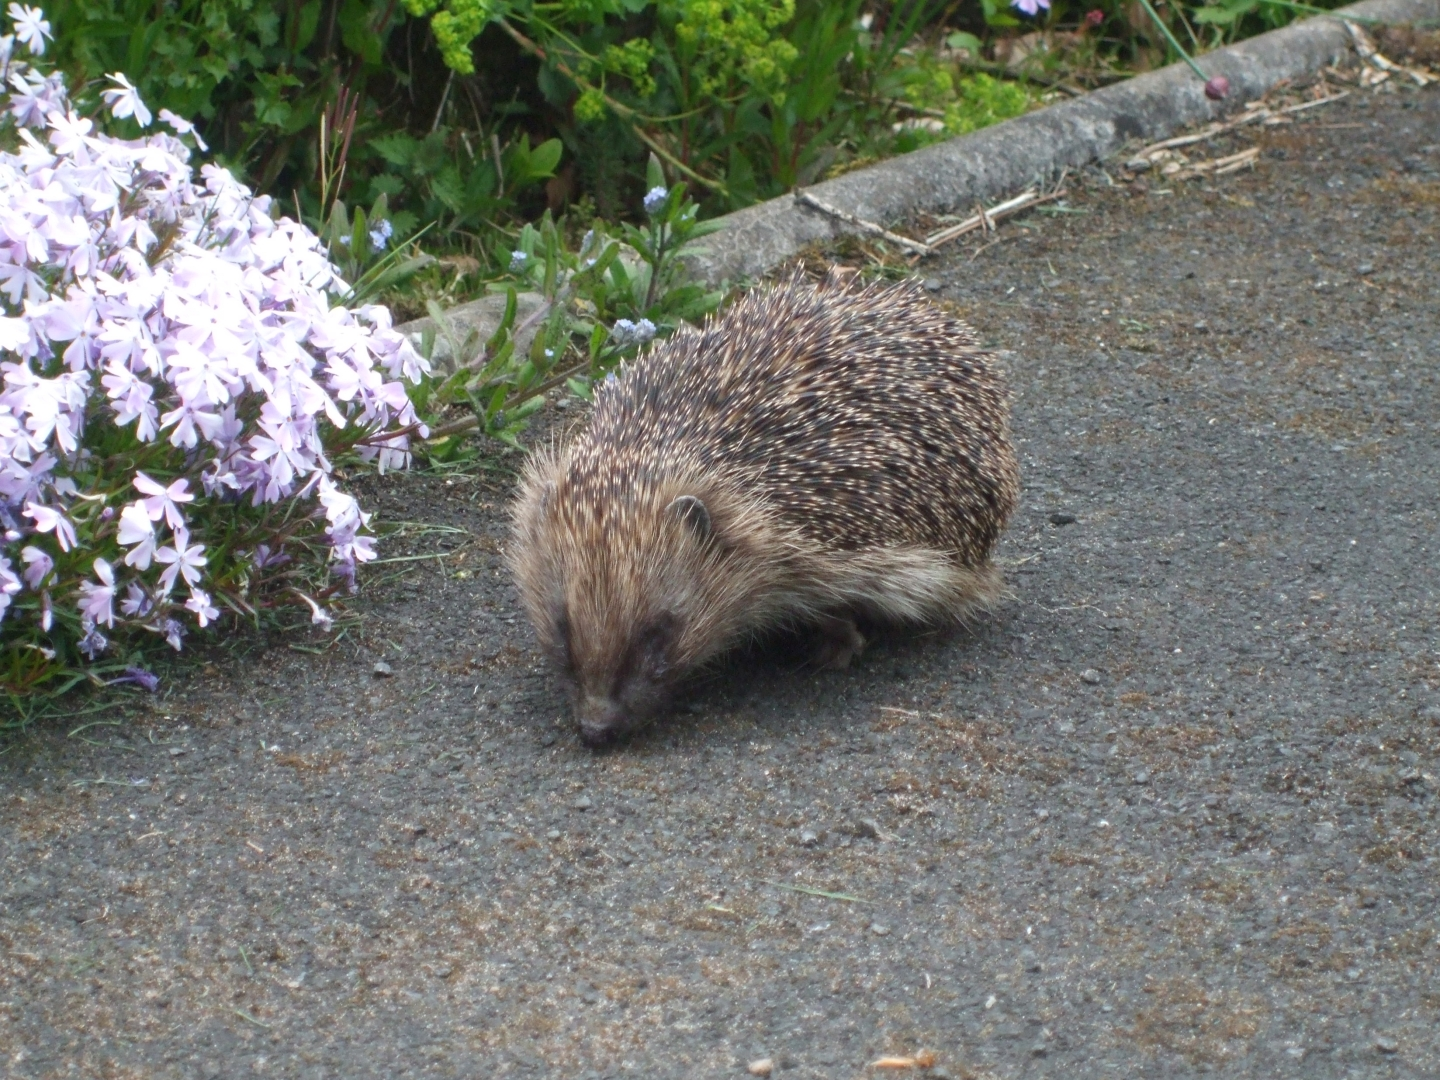 0699_The Hedgehog_Martin Riley